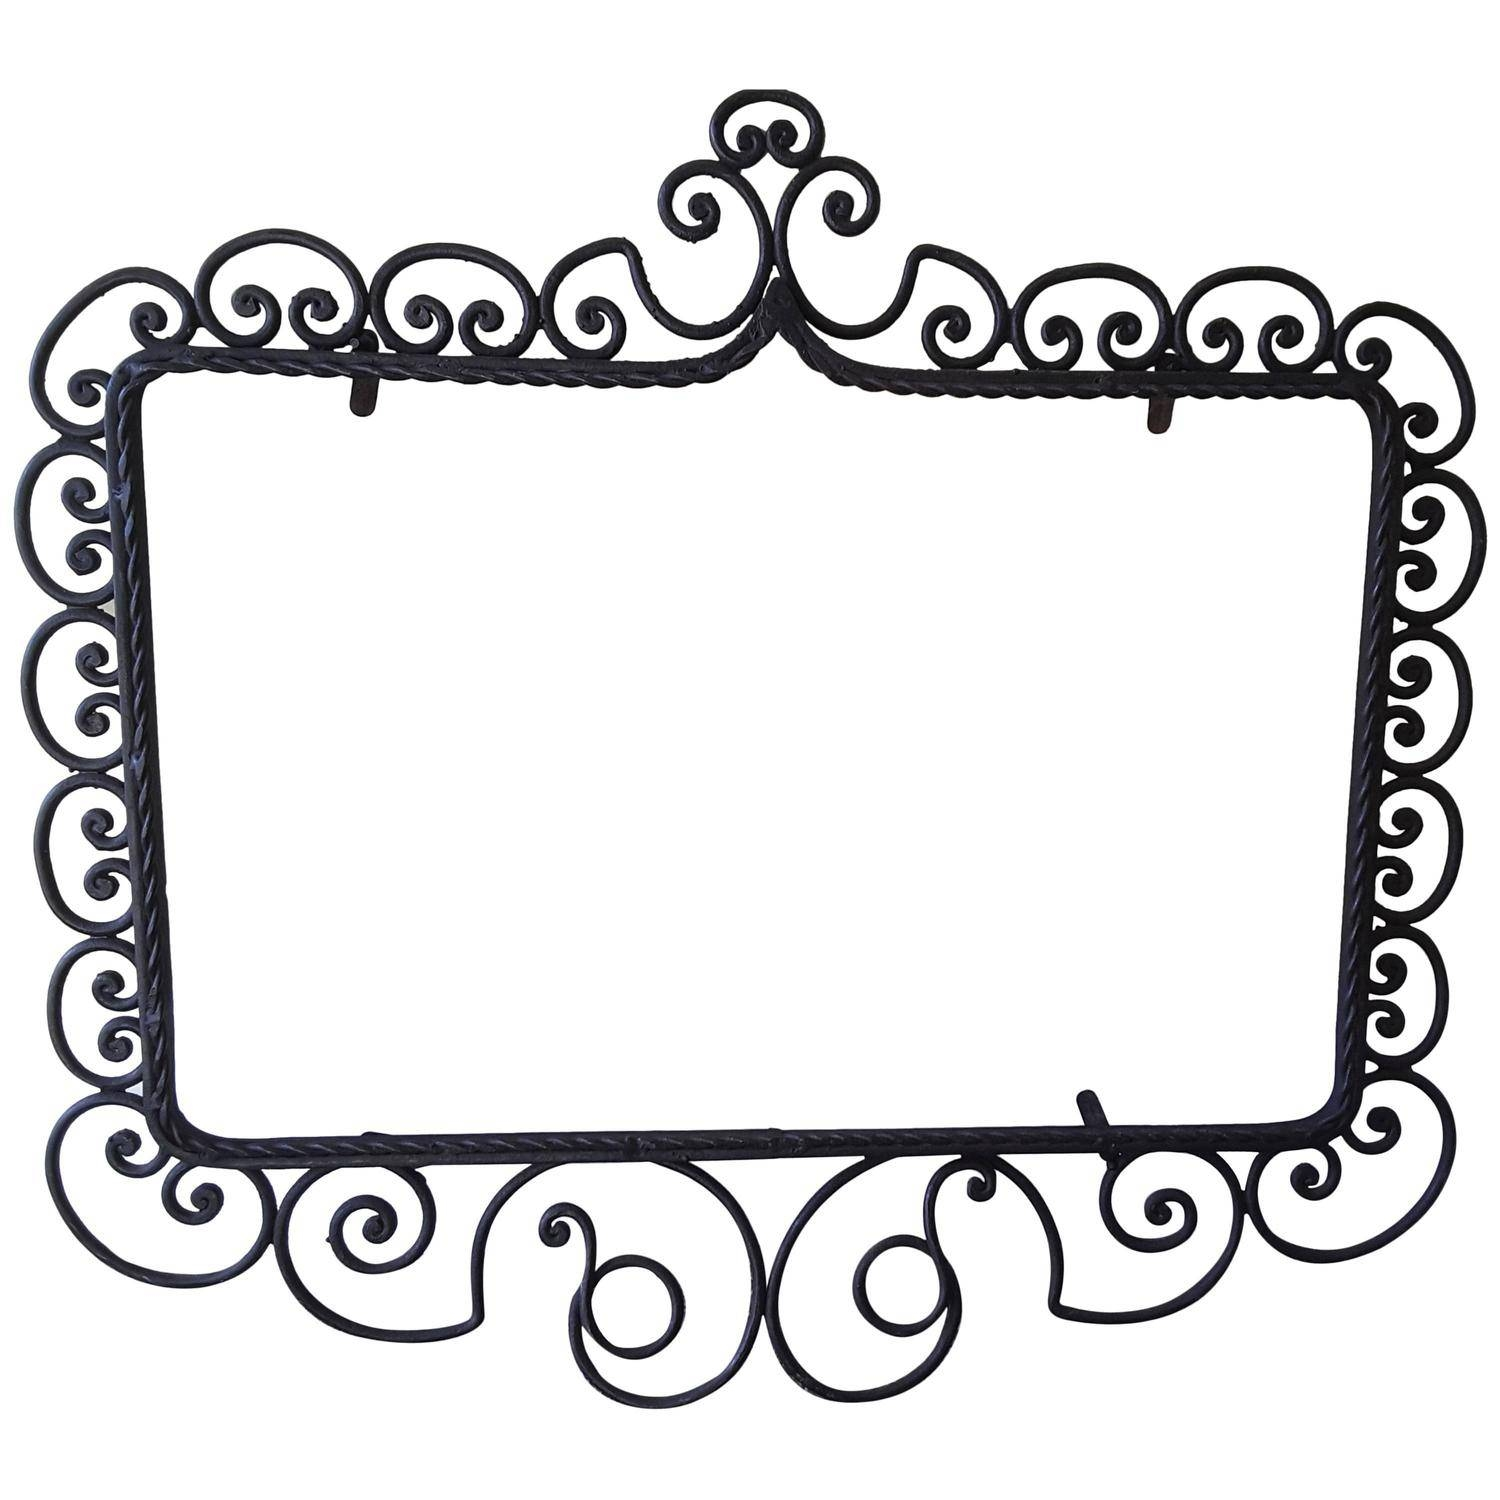 Wrought Iron Mirrors - 90 For Sale At 1Stdibs inside Wrought Iron Standing Mirrors (Image 15 of 25)